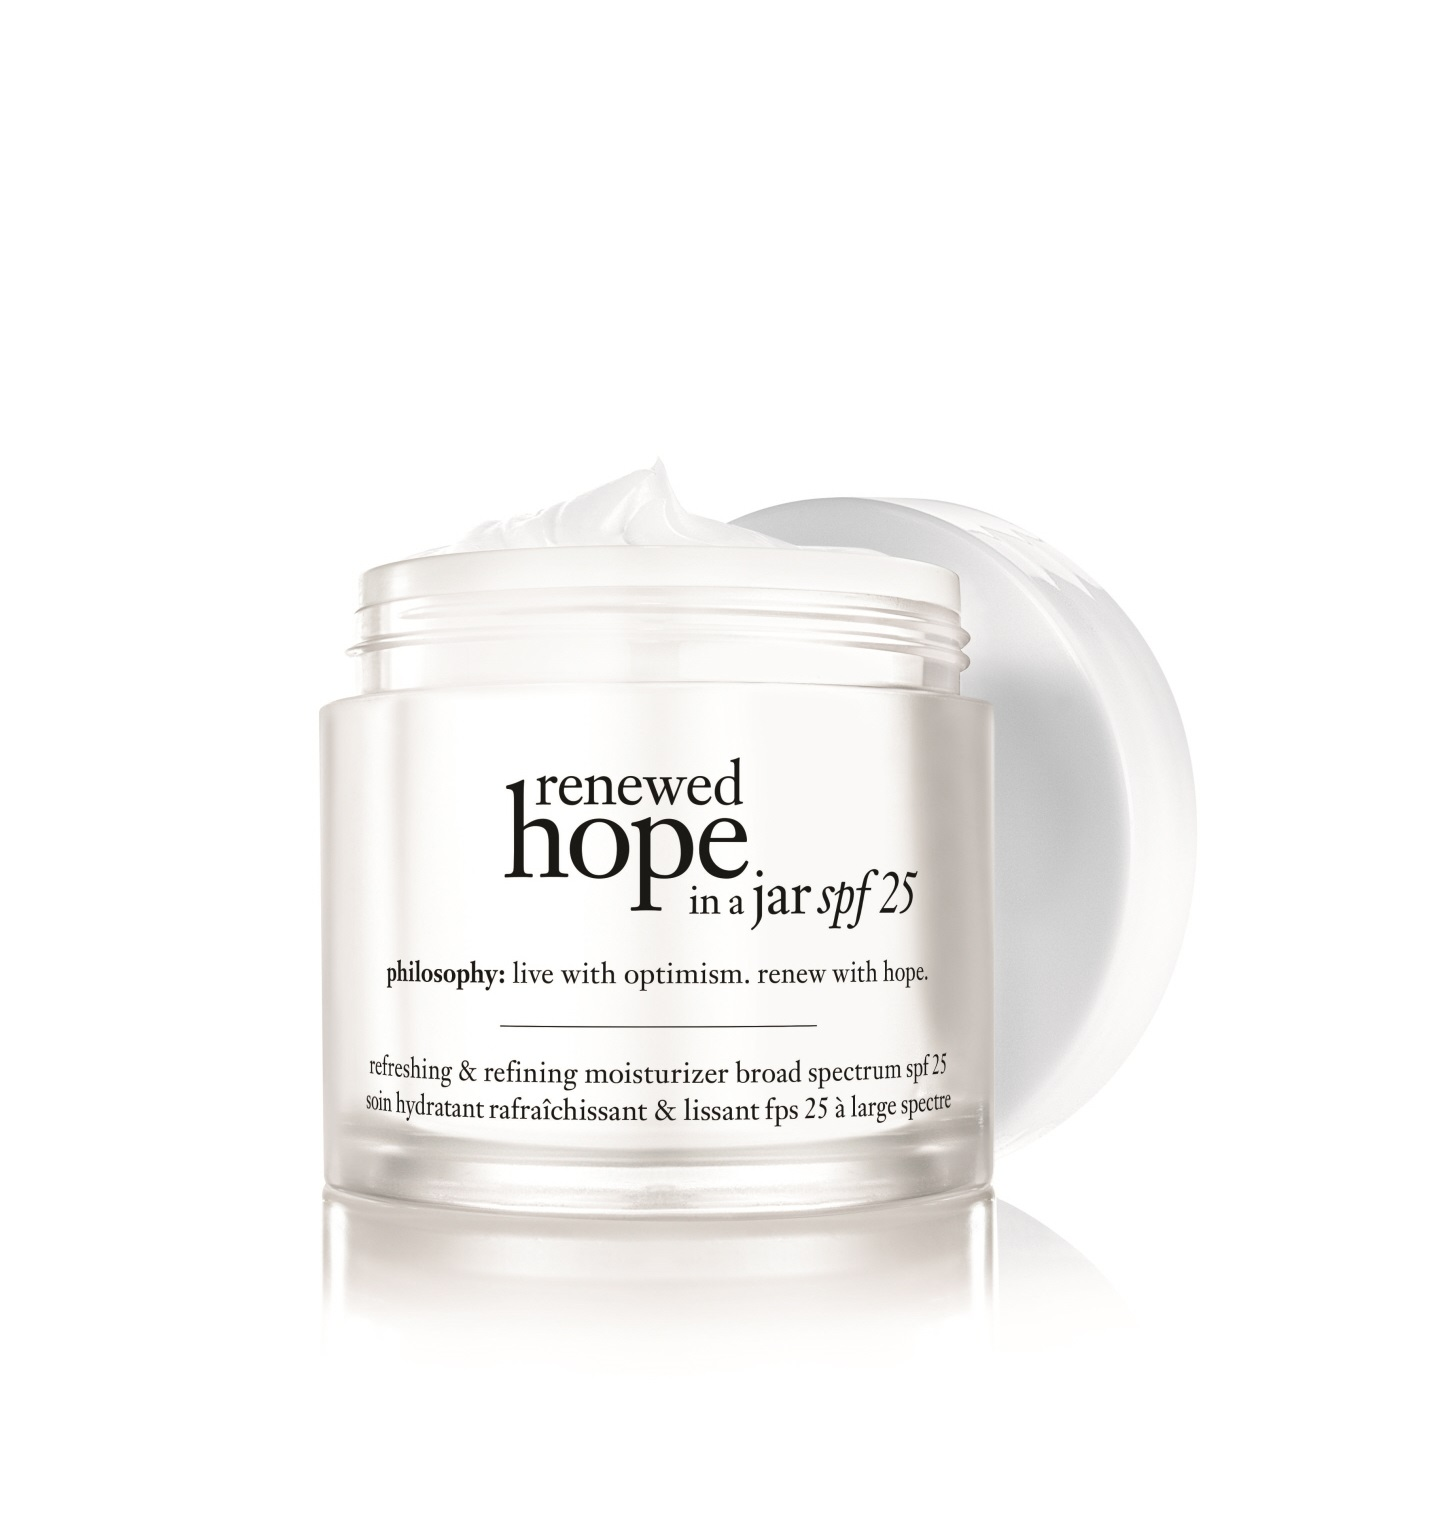 philosophy, renewed hope in a jar spf 25 refreshing & refining moisturizer broad spectrum spf 25